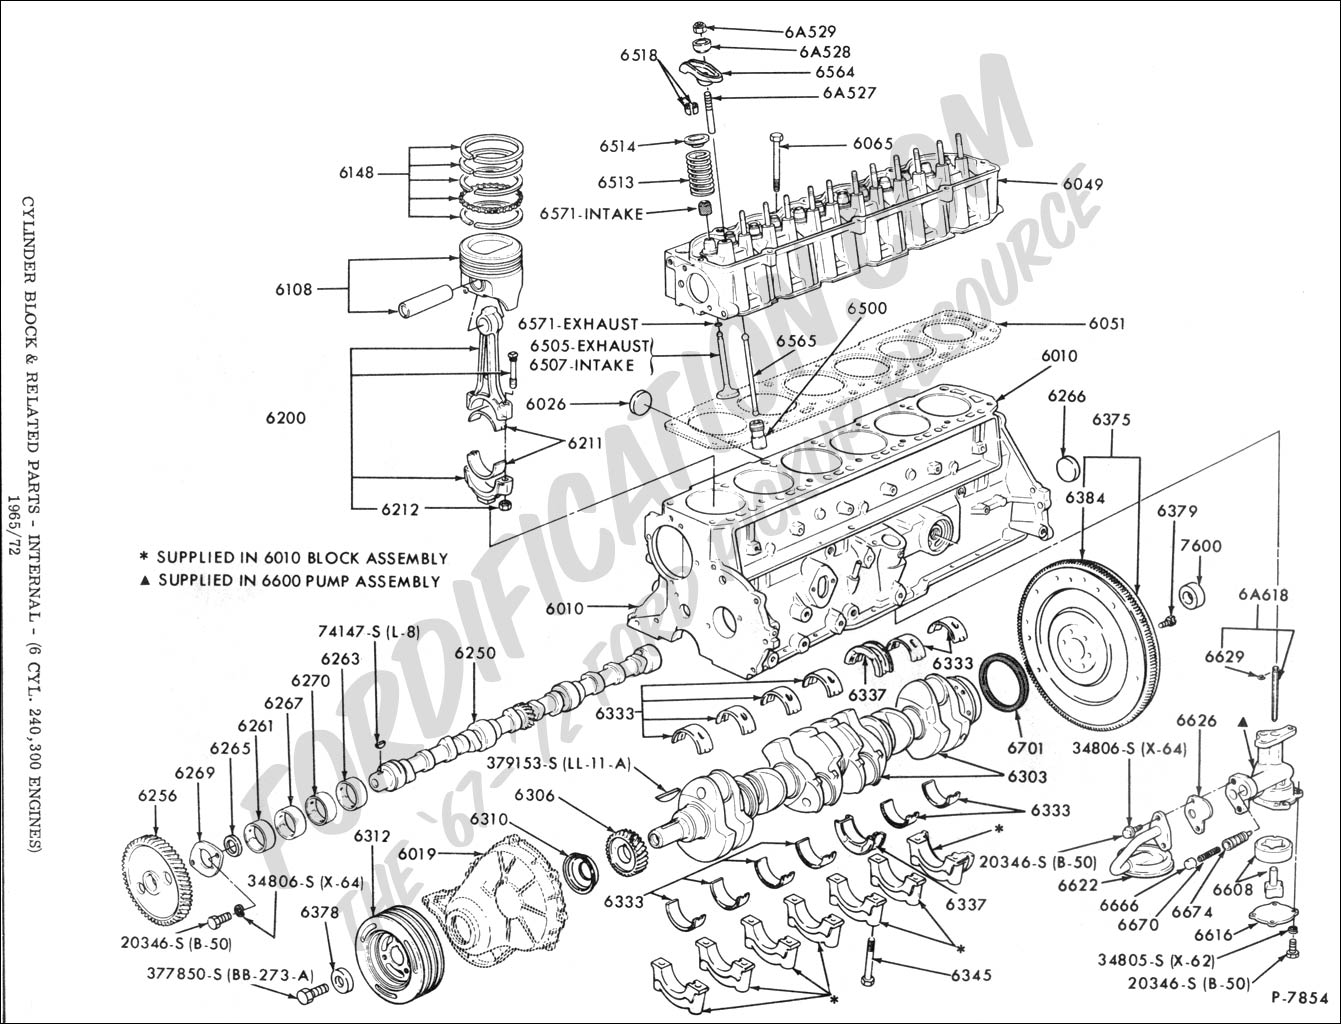 silverado 4 3 engine diagram wiring library 1970 CJ5 Specifications 3 4 internal engine diagrams schematics wiring diagrams u2022 rh schoosretailstores chevrolet engine diagram chevy